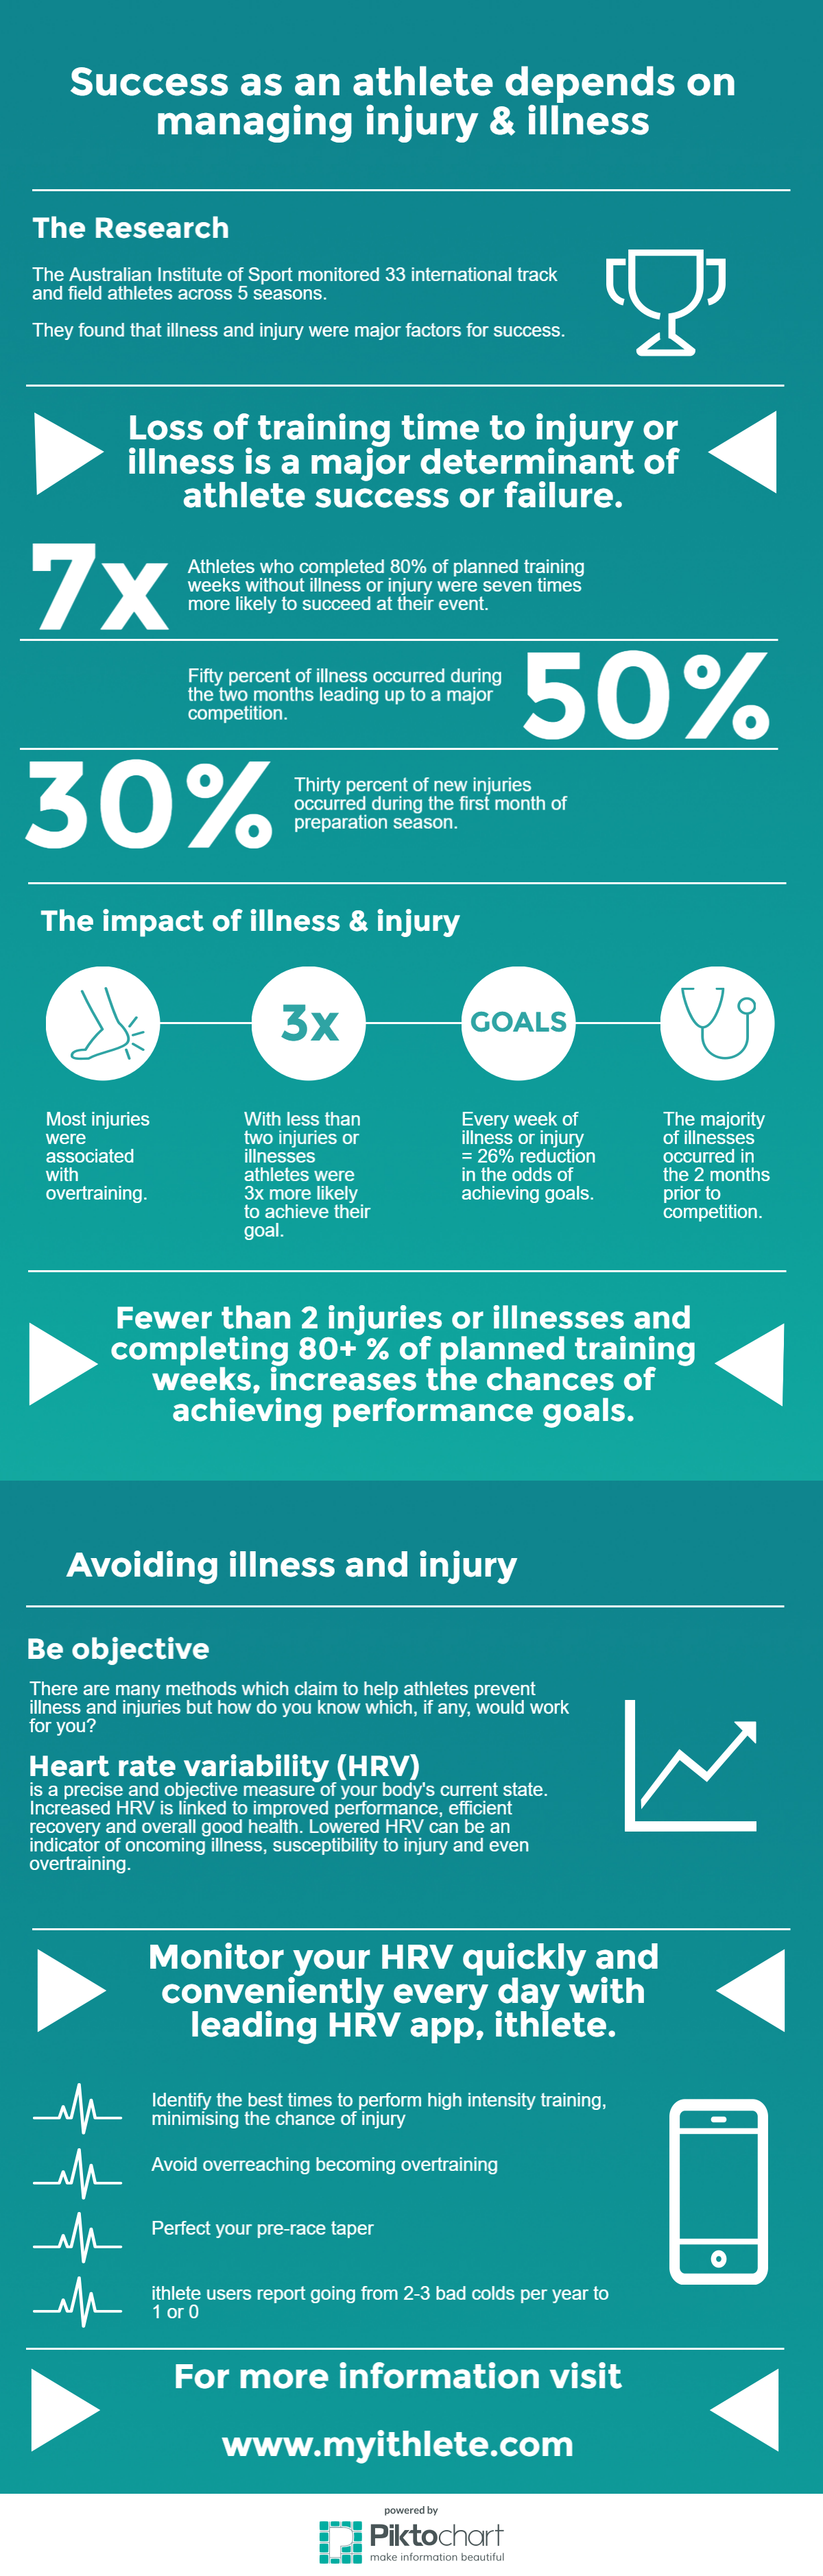 injury and illness: success infographic